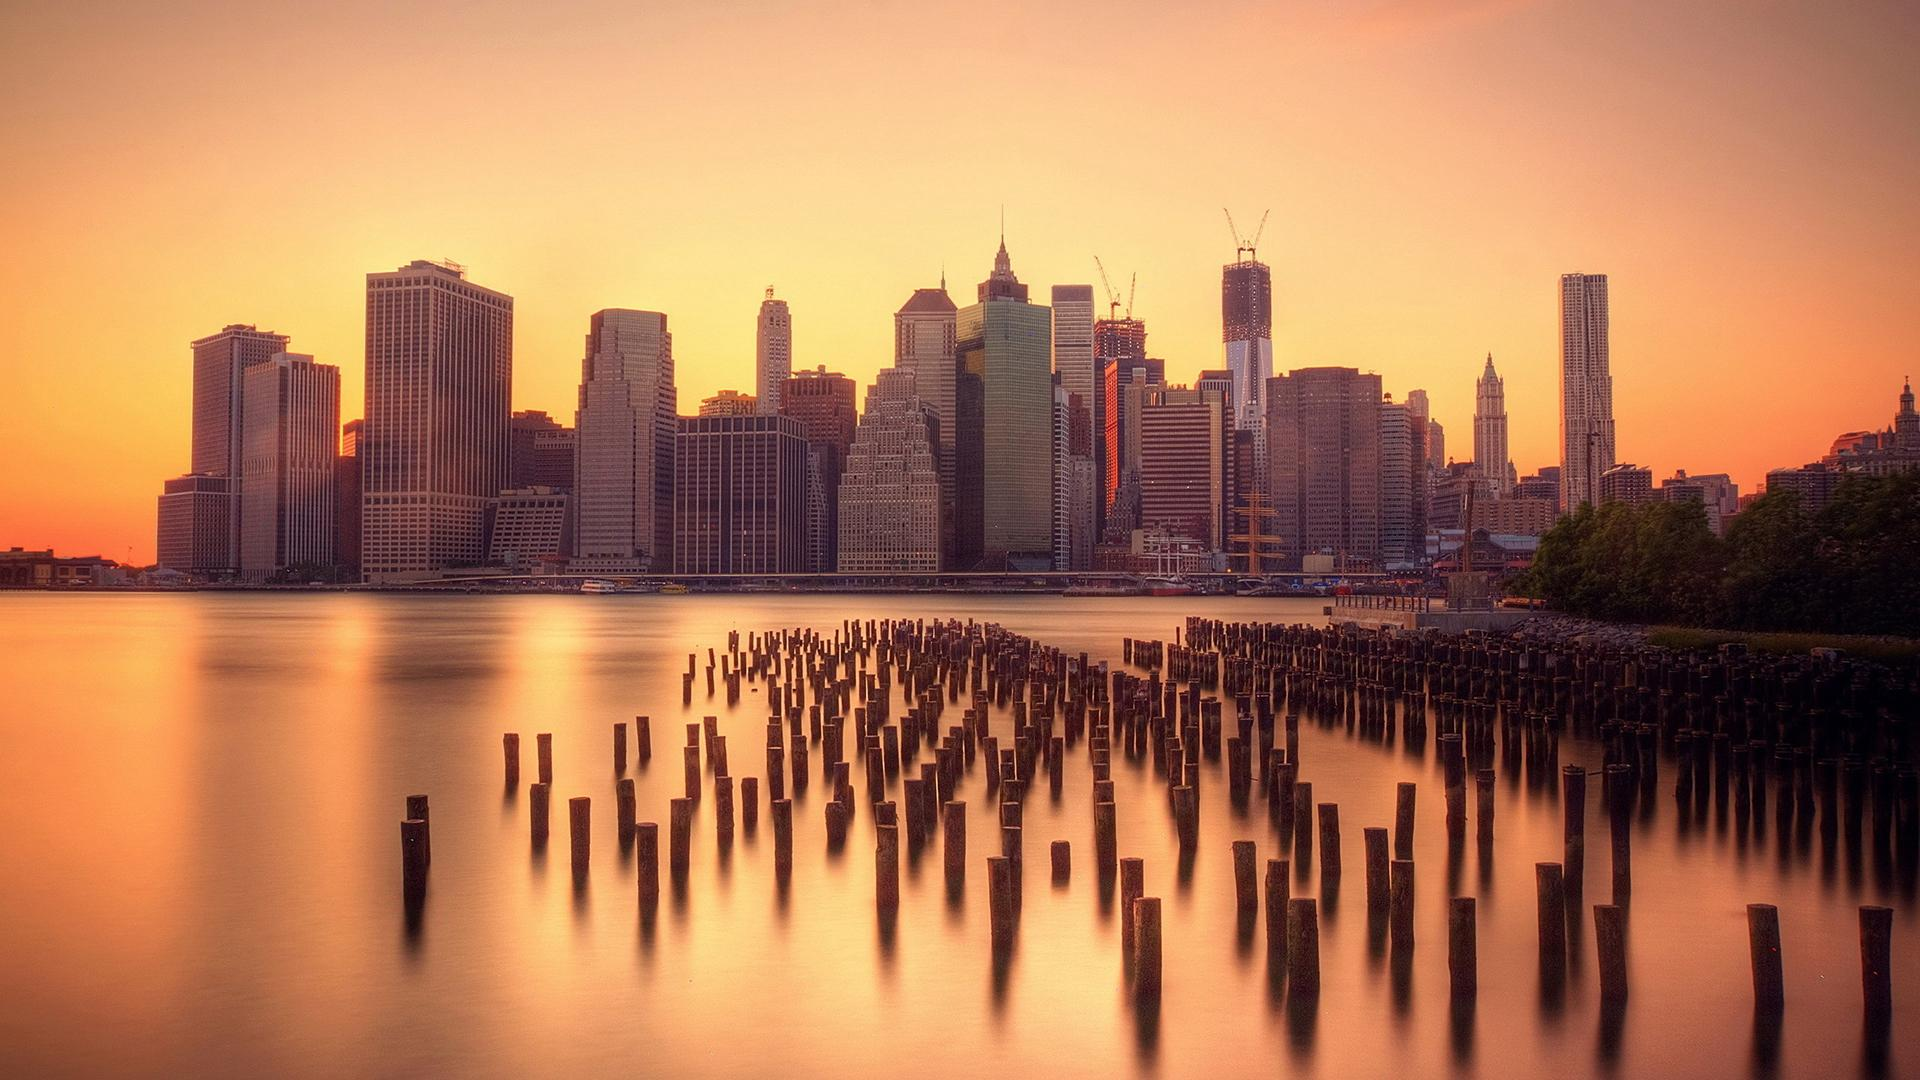 nyc hd wallpaper, hd new york, new york city background images